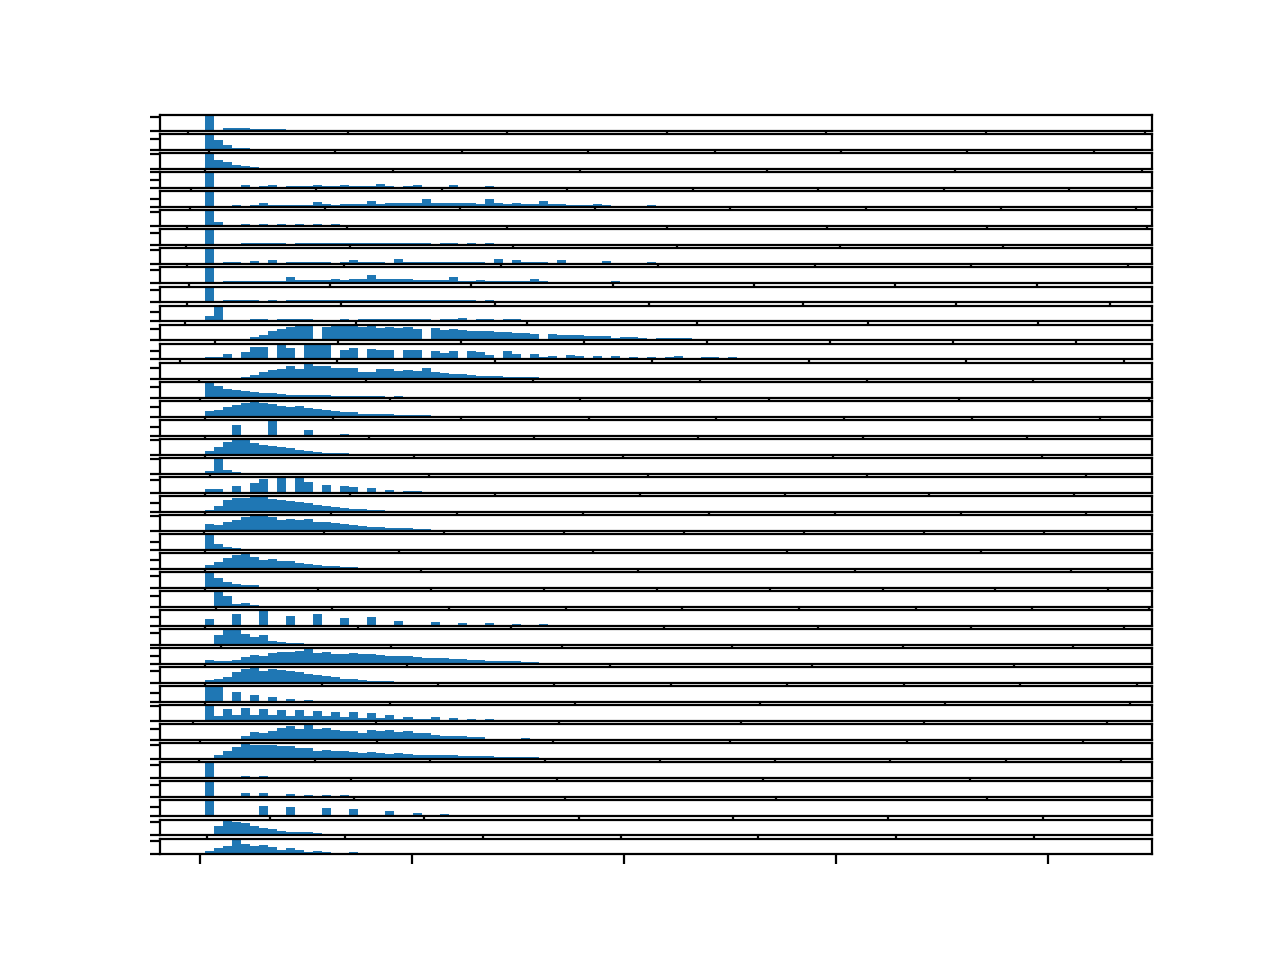 Histograms for each target variable for the entire training dataset